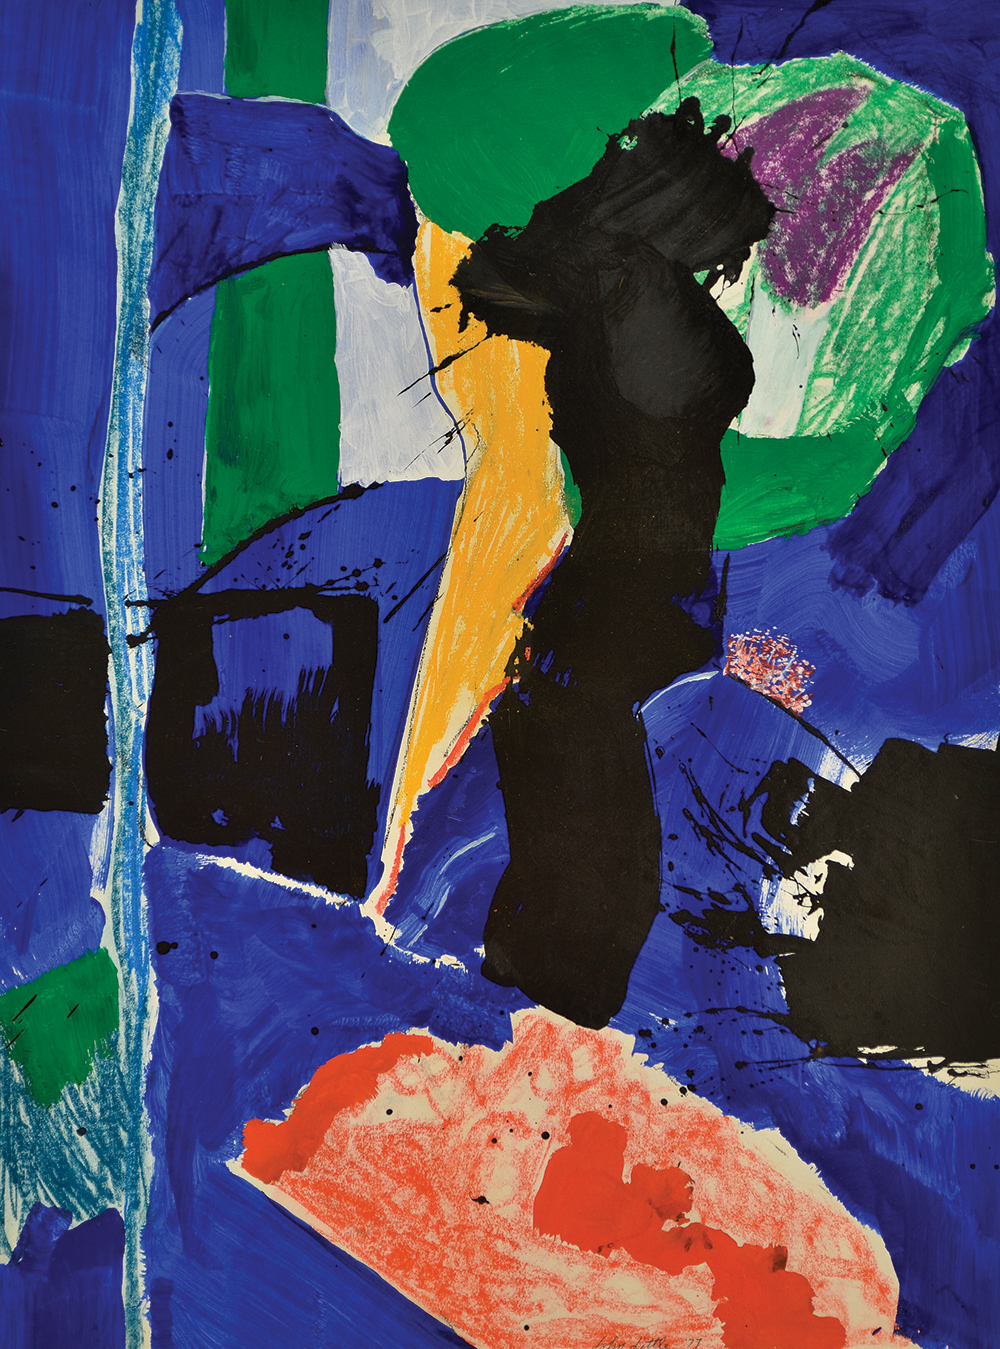 Untitled,   Mixed media on paper, 1977, 30 1/4 x 22 1/4 inches